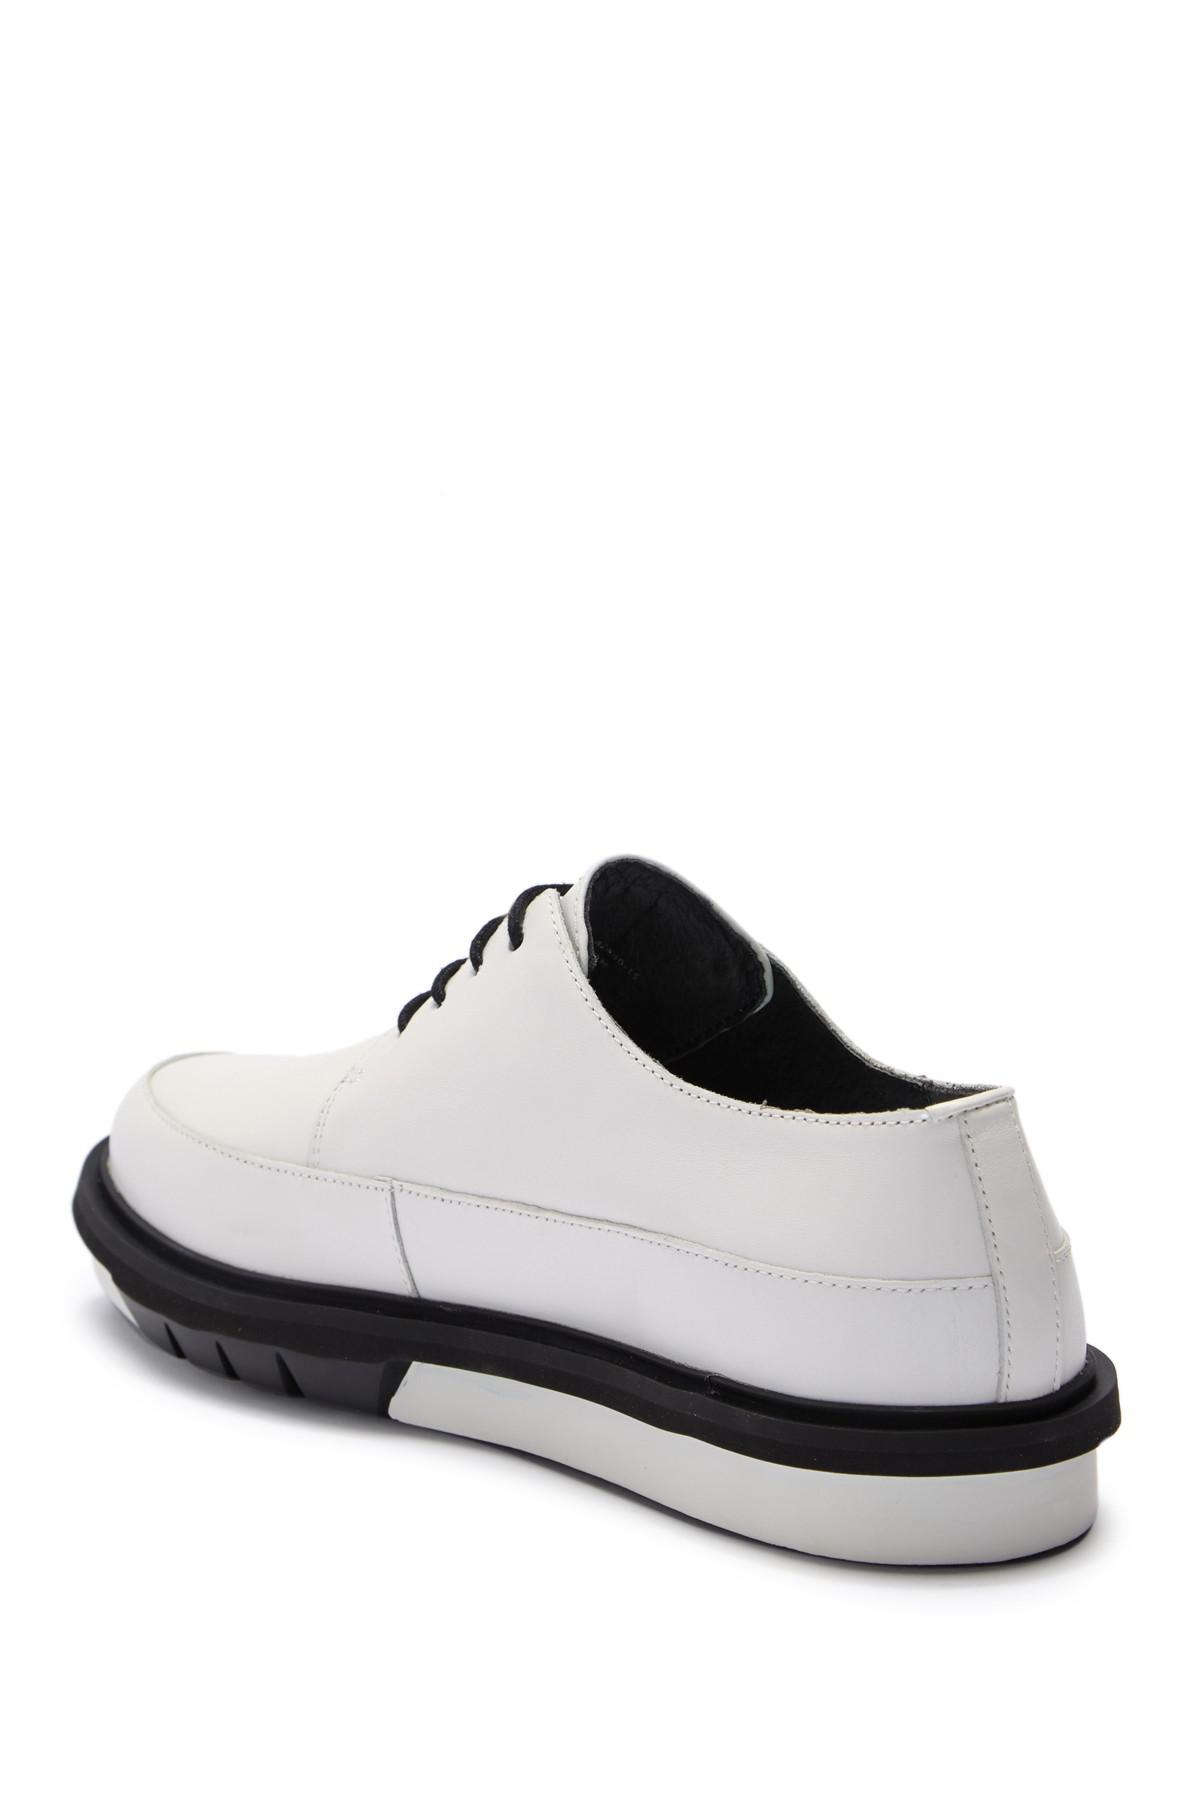 b0796bf2a74 Camper - White Mateo Leather Flatform Derby for Men - Lyst. View fullscreen